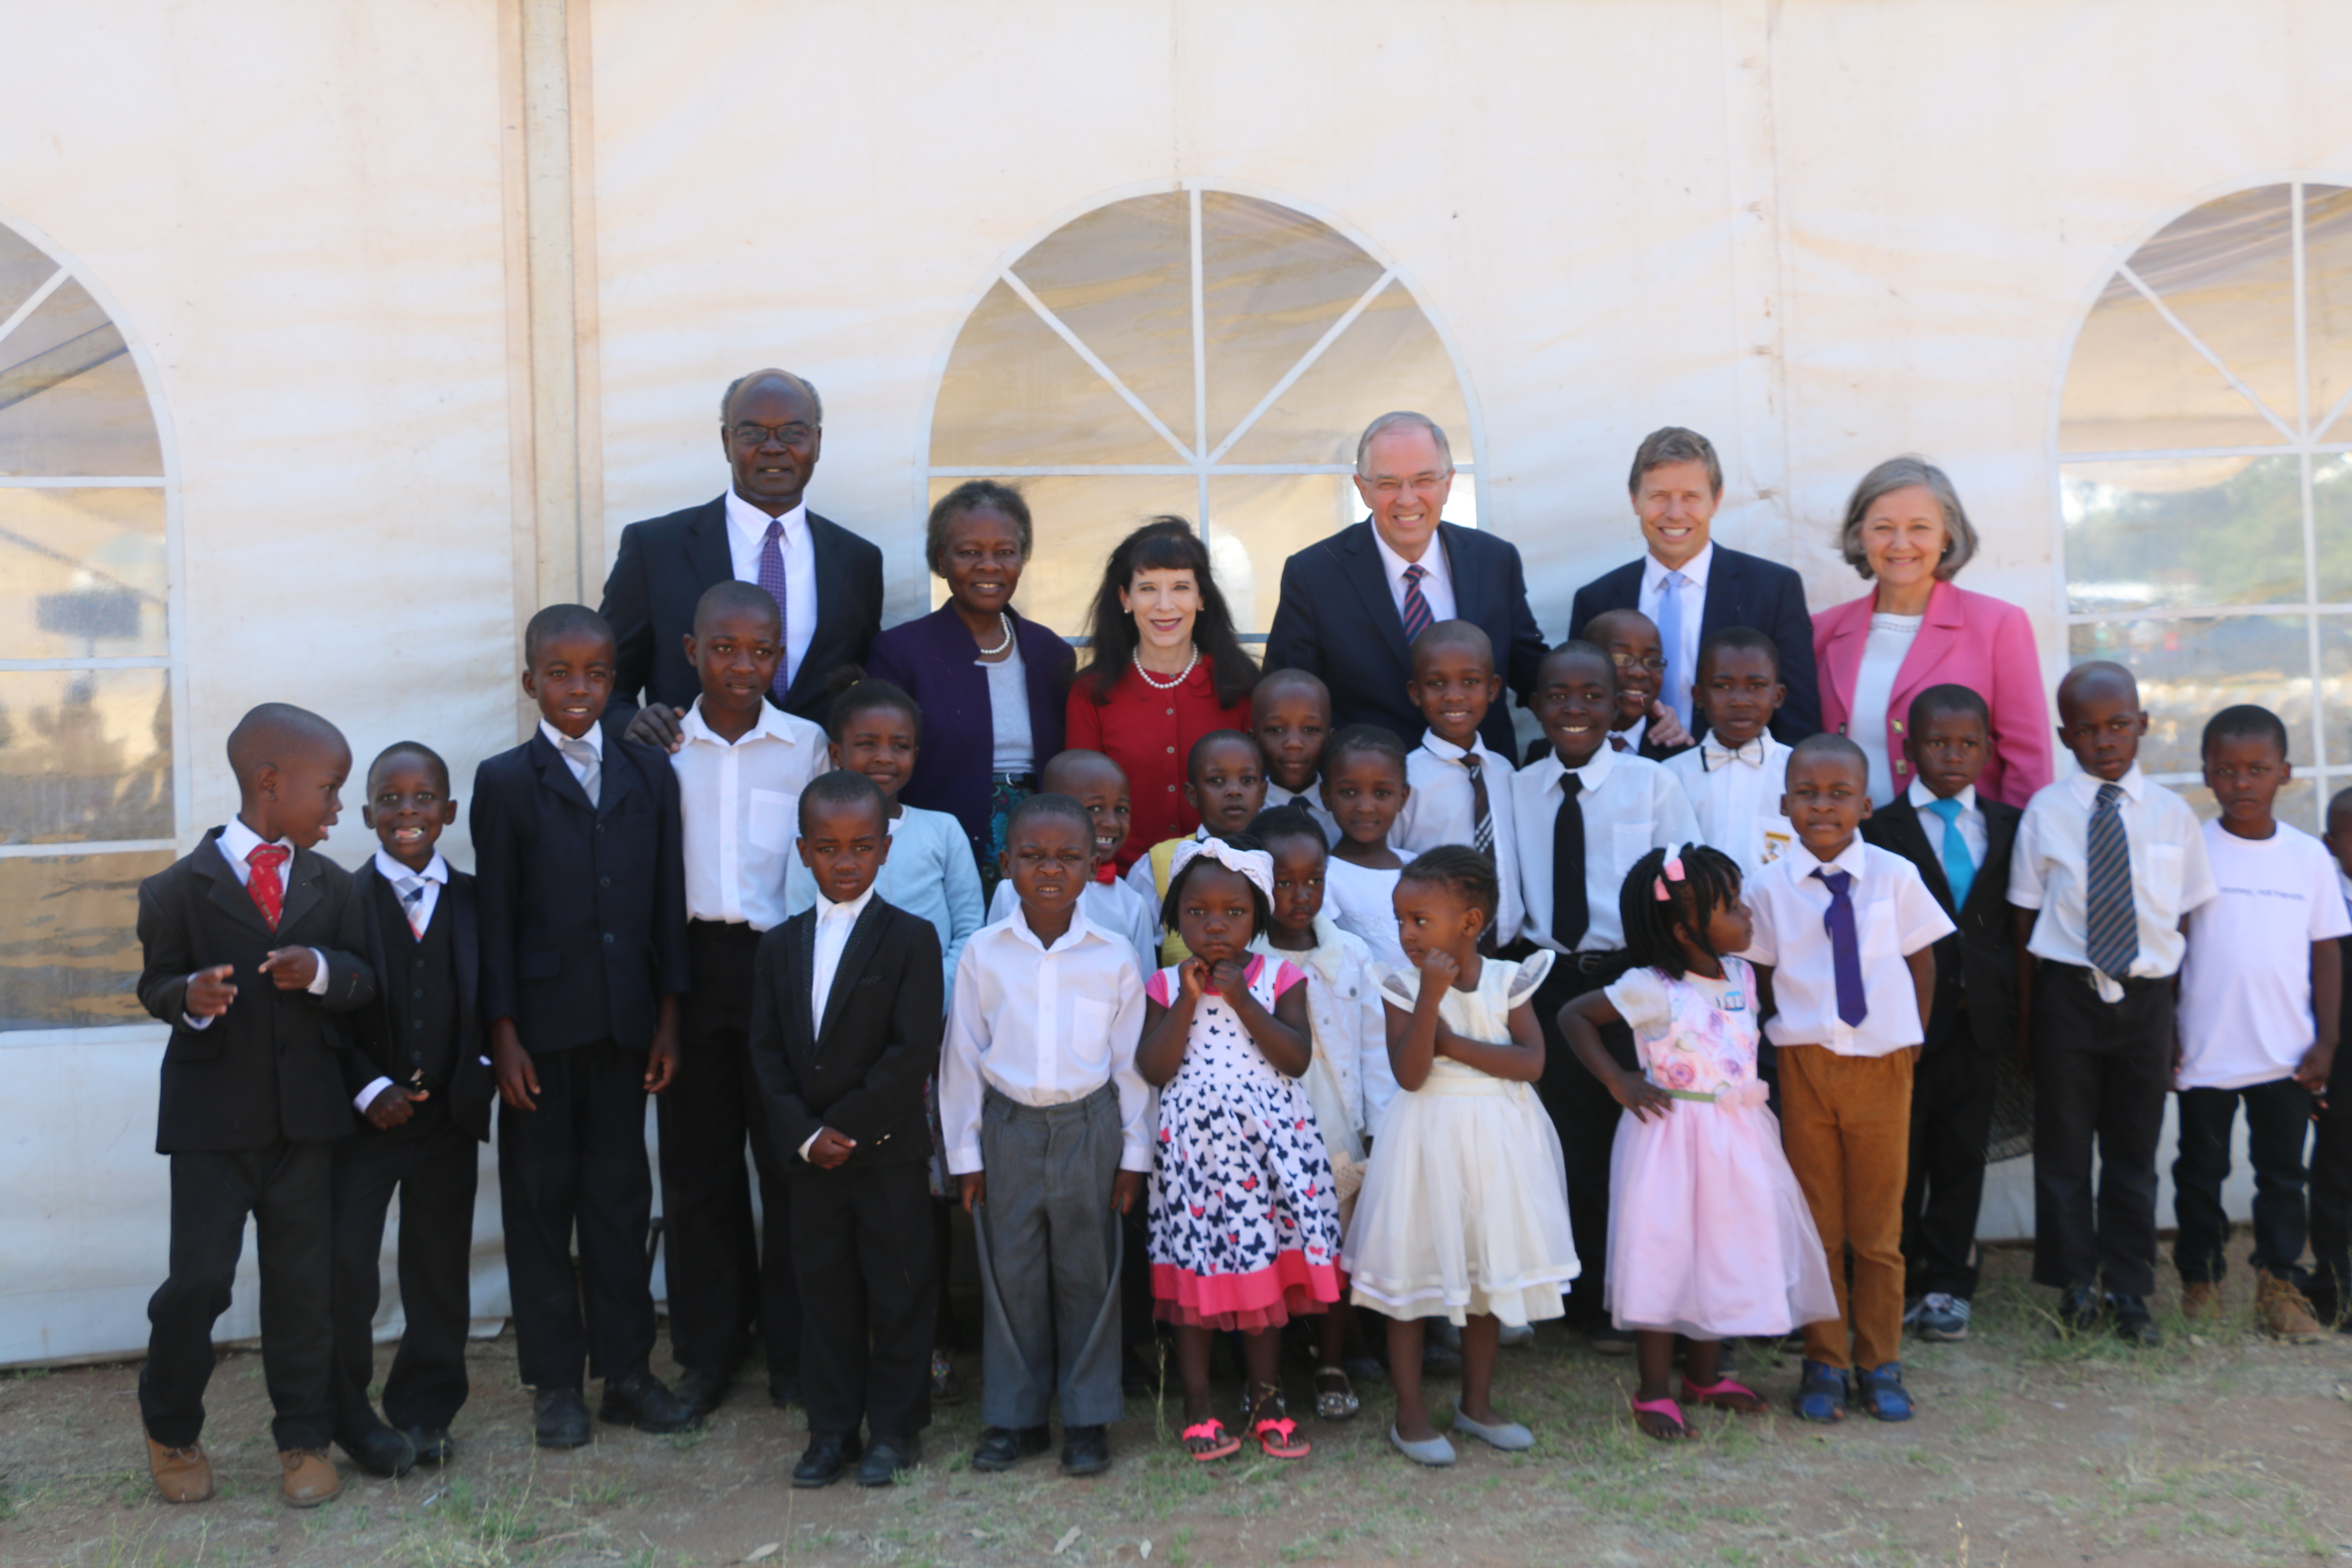 Elder Neil L. Andersen of the Quorum of the Twelve Apostles, center with Sister Kathy Andersen; Elder Jospeh W. Sitati, a General Authority Seventy, and Sister Gladys N. Sitati, left; and Elder S. Mark Palmer, a General Authority Seventy, and Sister Jacqueline W. Palmer, gather with children after a member meeting in Zimbabwe on Nov. 18. 2018.